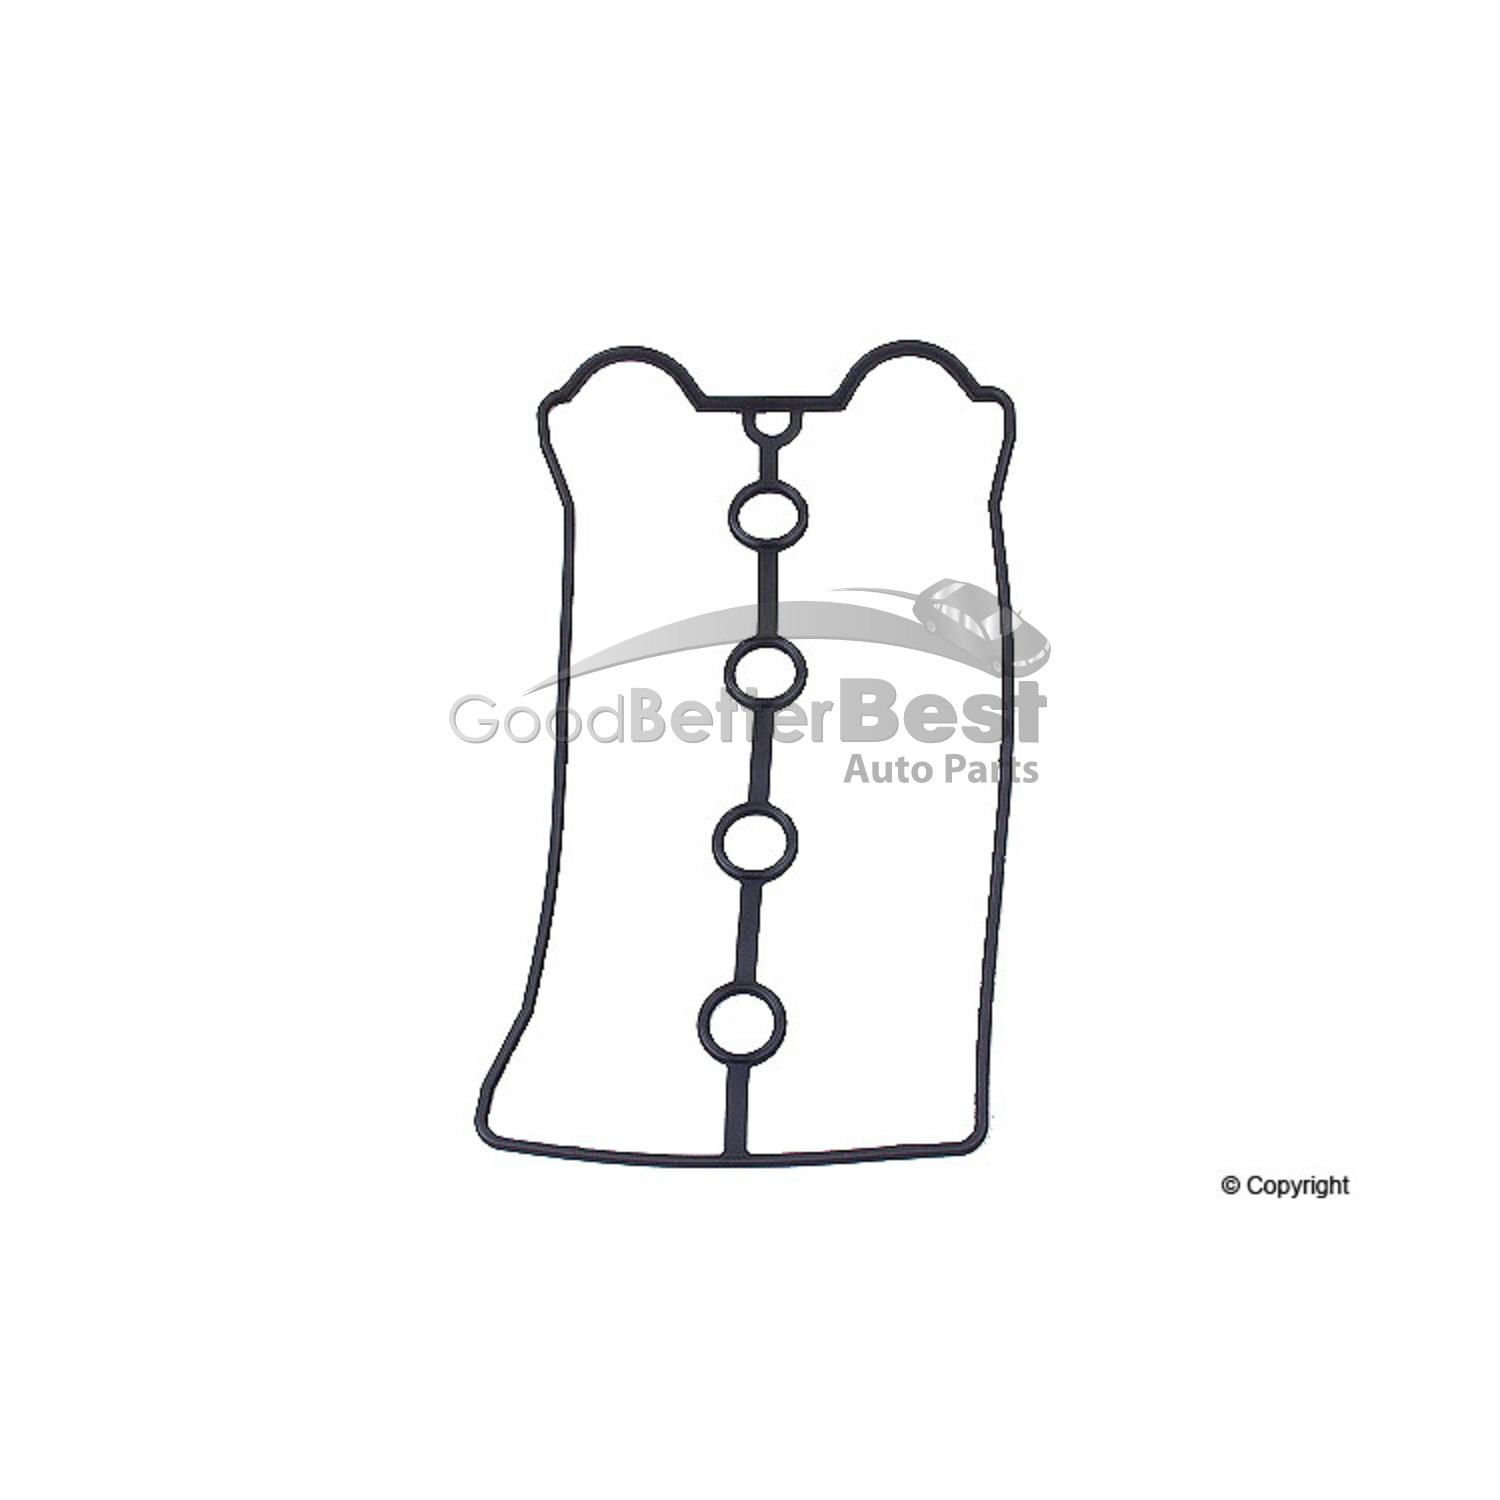 New Stone Engine Valve Cover Gasket Jcd Daewoo Lanos